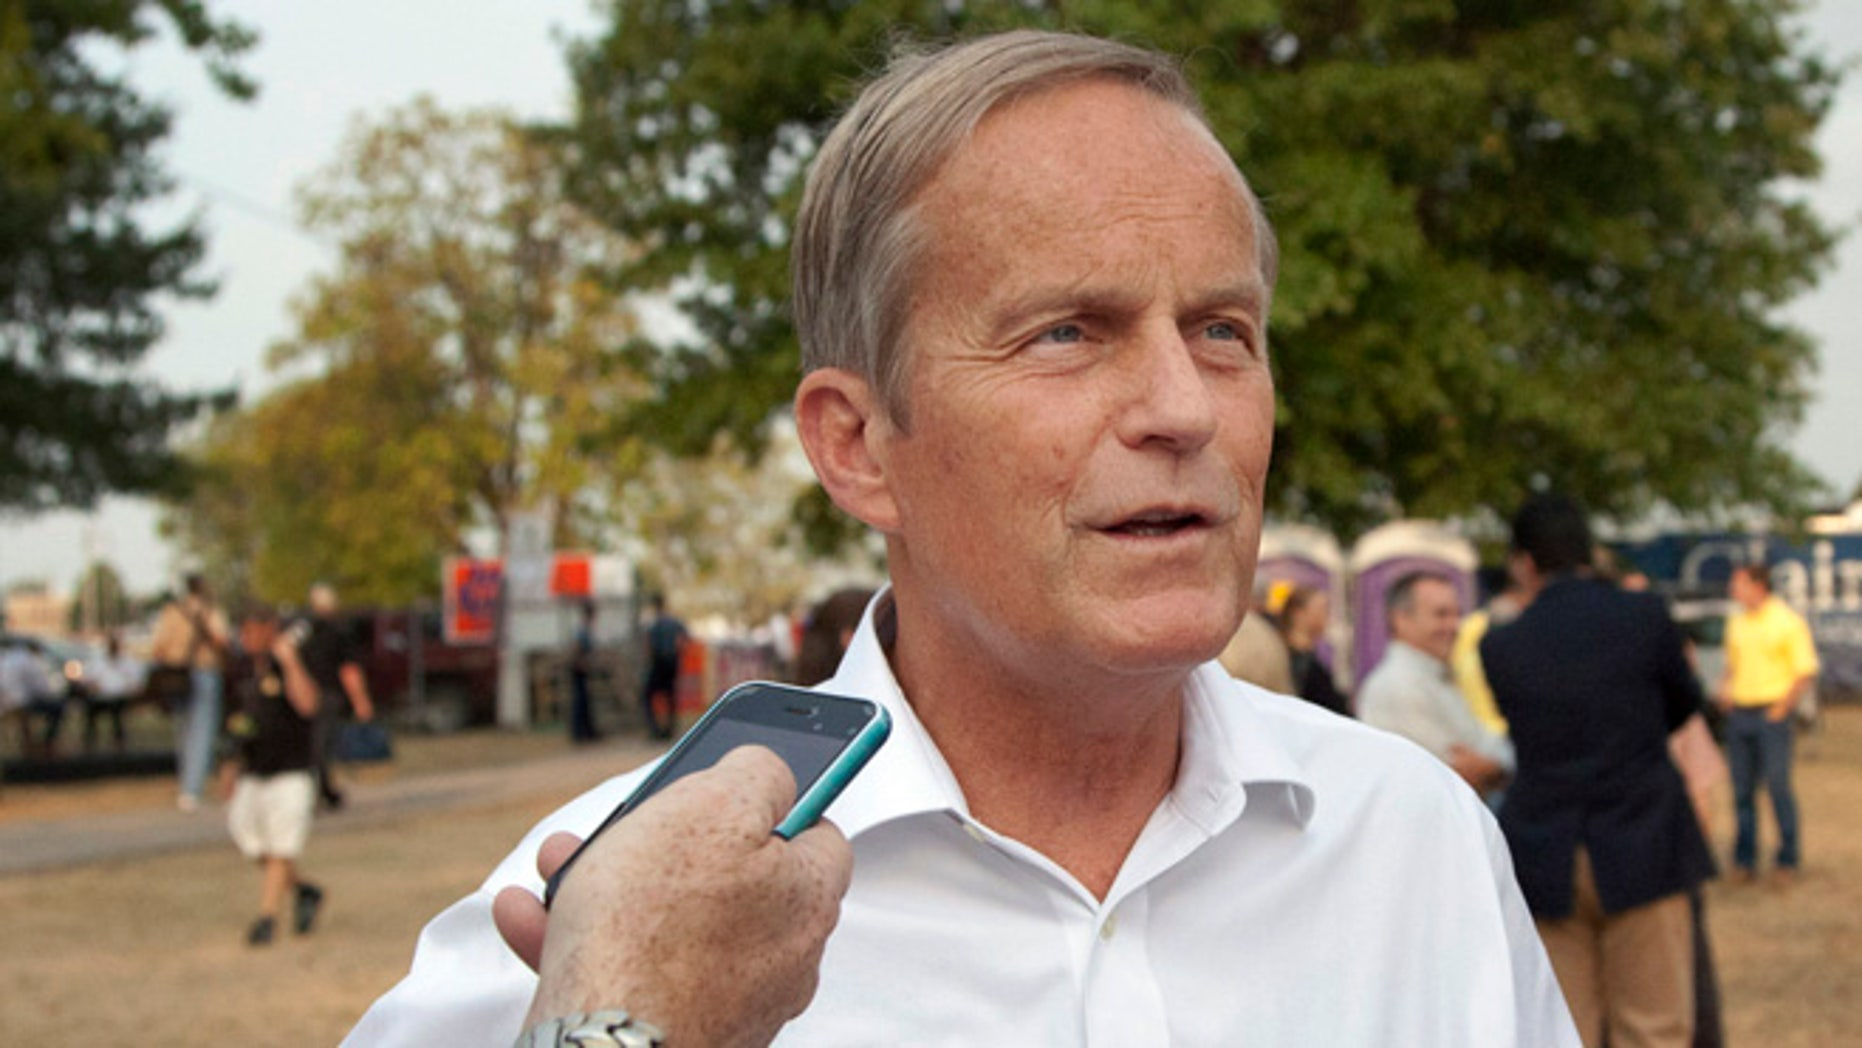 Aug. 16, 2012: Rep. Todd Akin, R-Mo., talks with reporters while attending the Governor's Ham Breakfast at the Missouri State Fair in Sedalia, Mo.